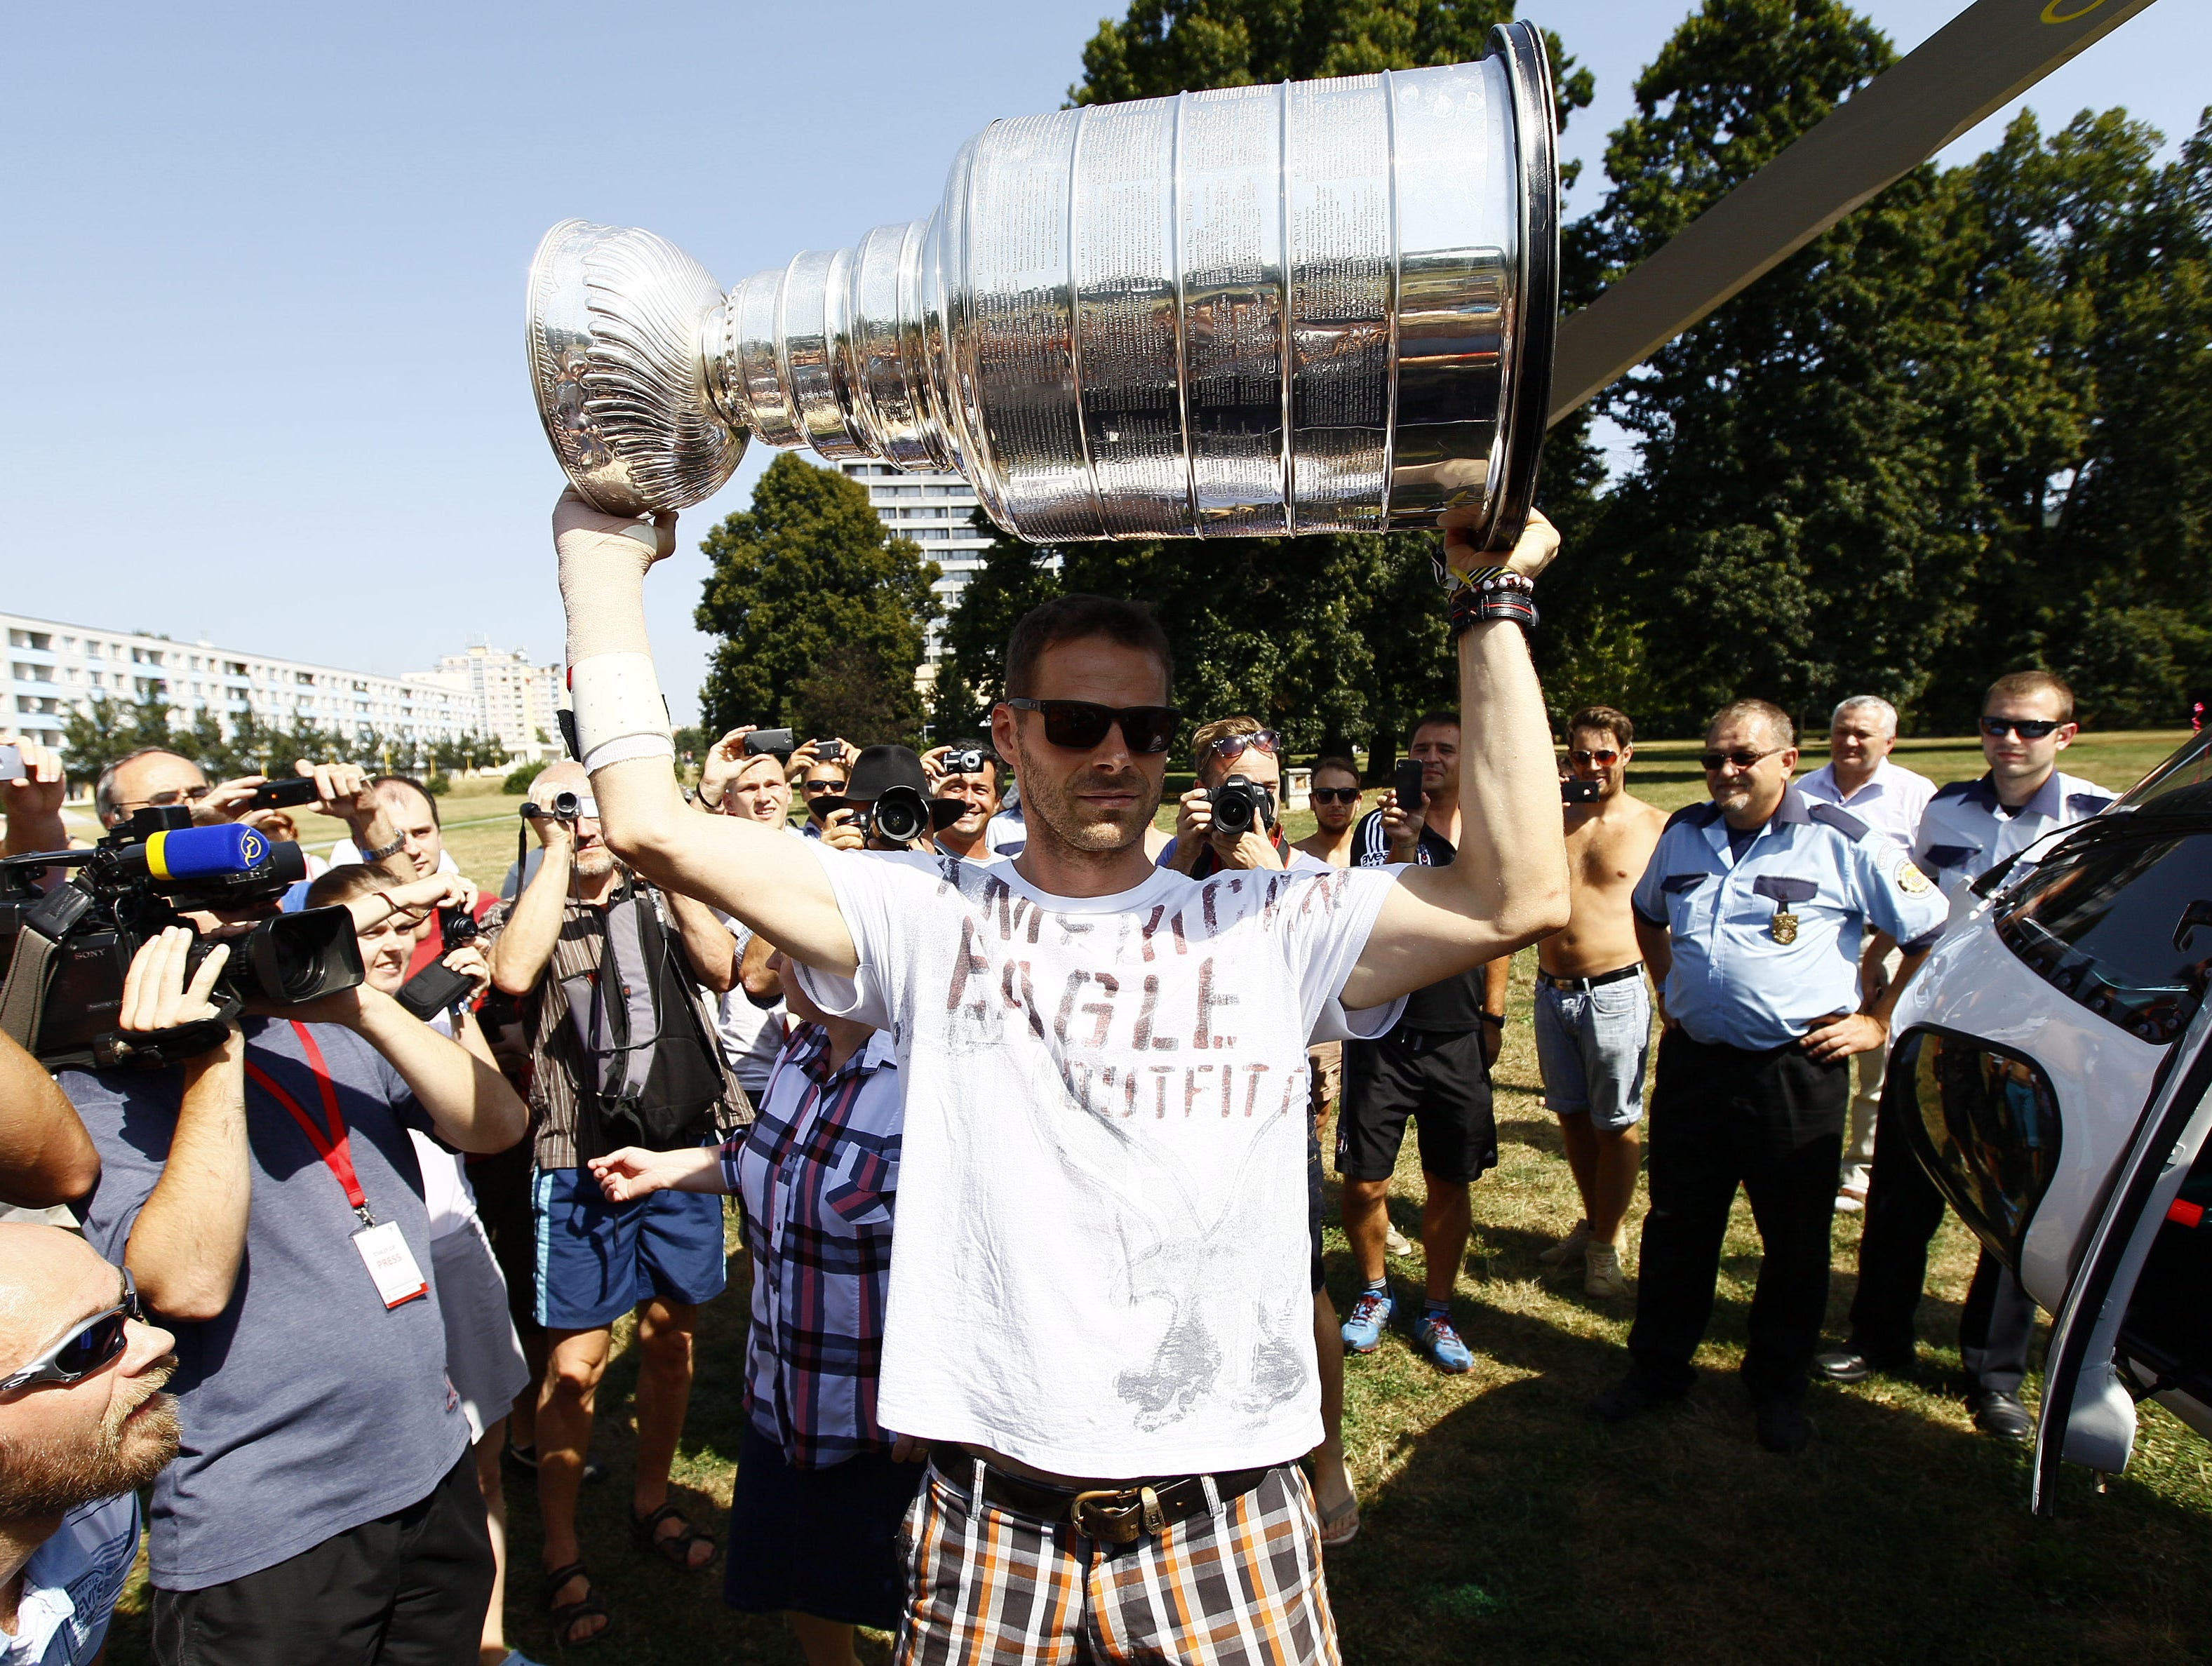 Aug. 8: Michal Handzus shows off the Stanley Cup after arriving in his hometown of Banska Bystrica, Slovakia.